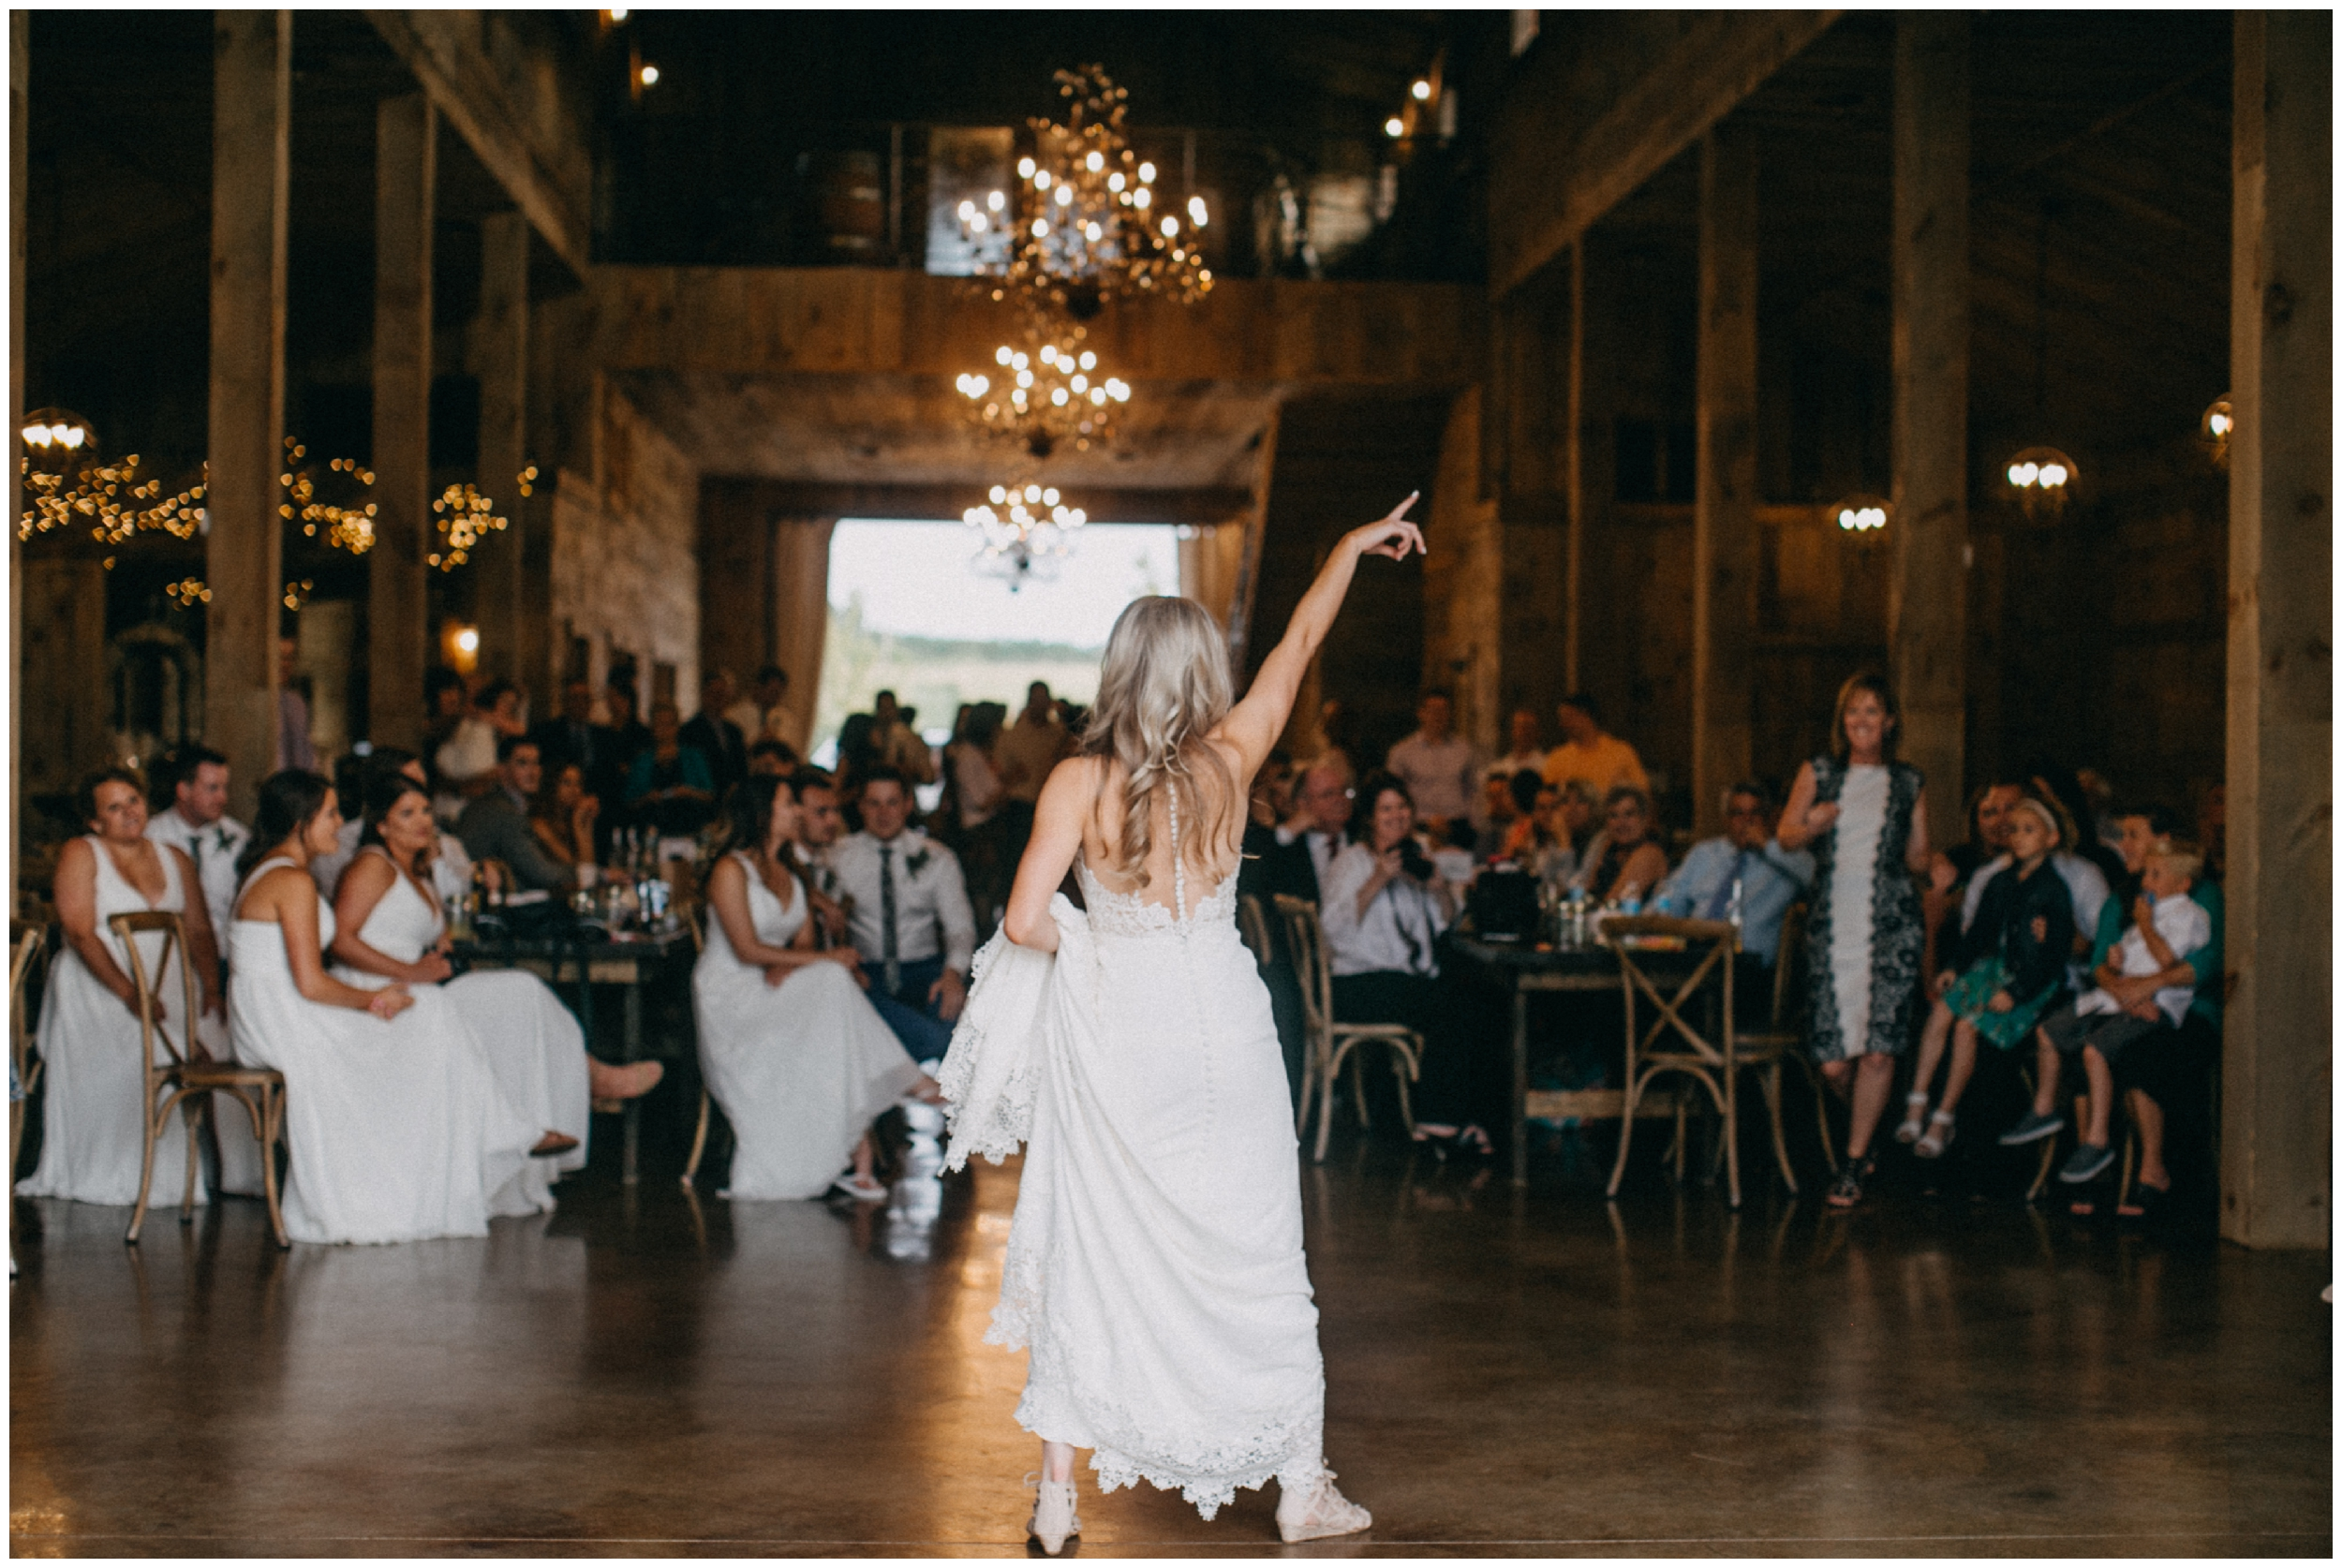 Bride dancing at Creekside farm wedding